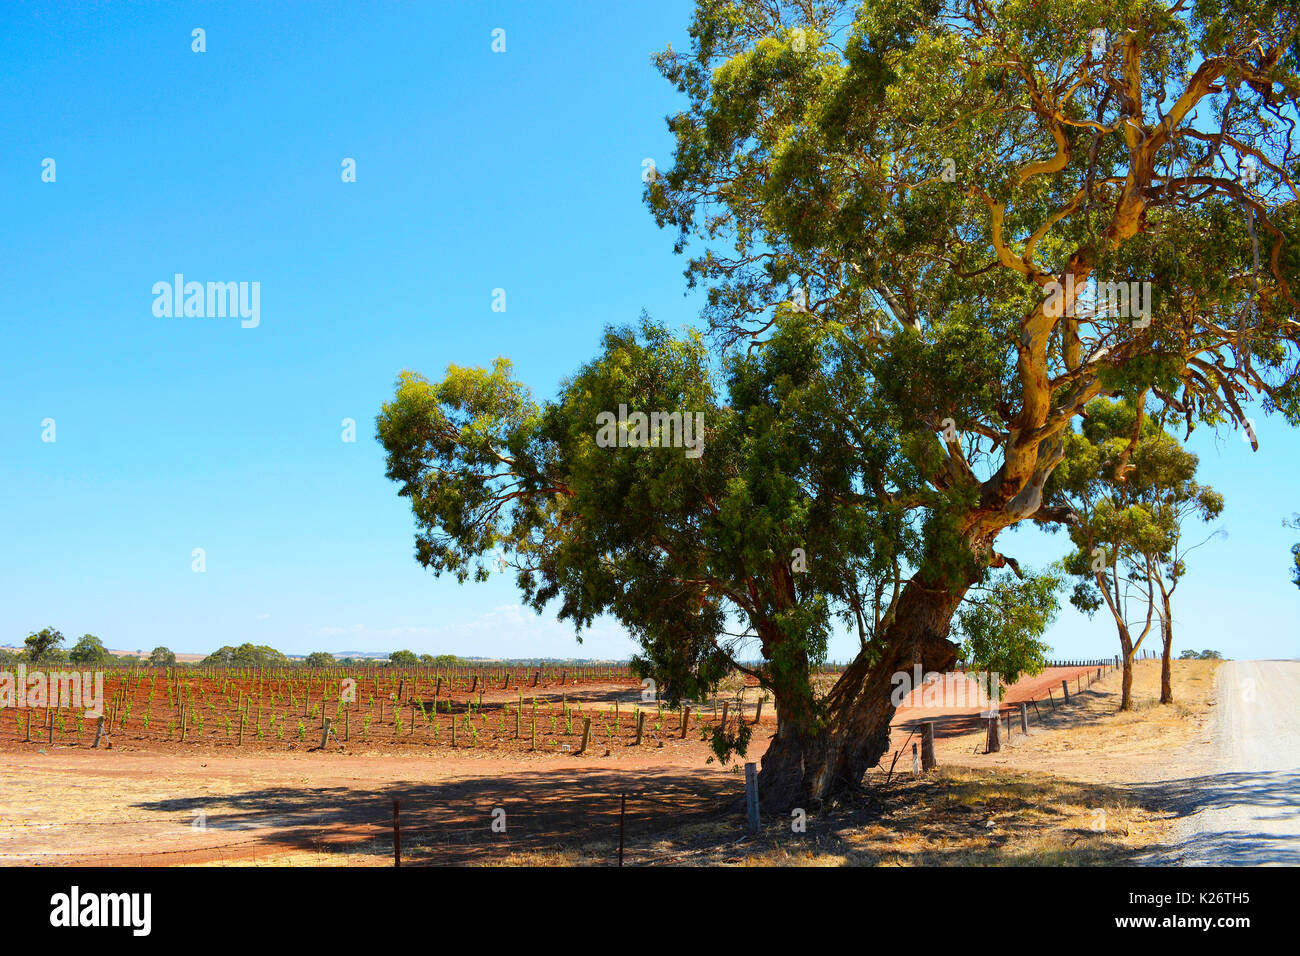 Large gum tree overlooking rows of grape vines, Barossa Valley landscape. - Stock Image